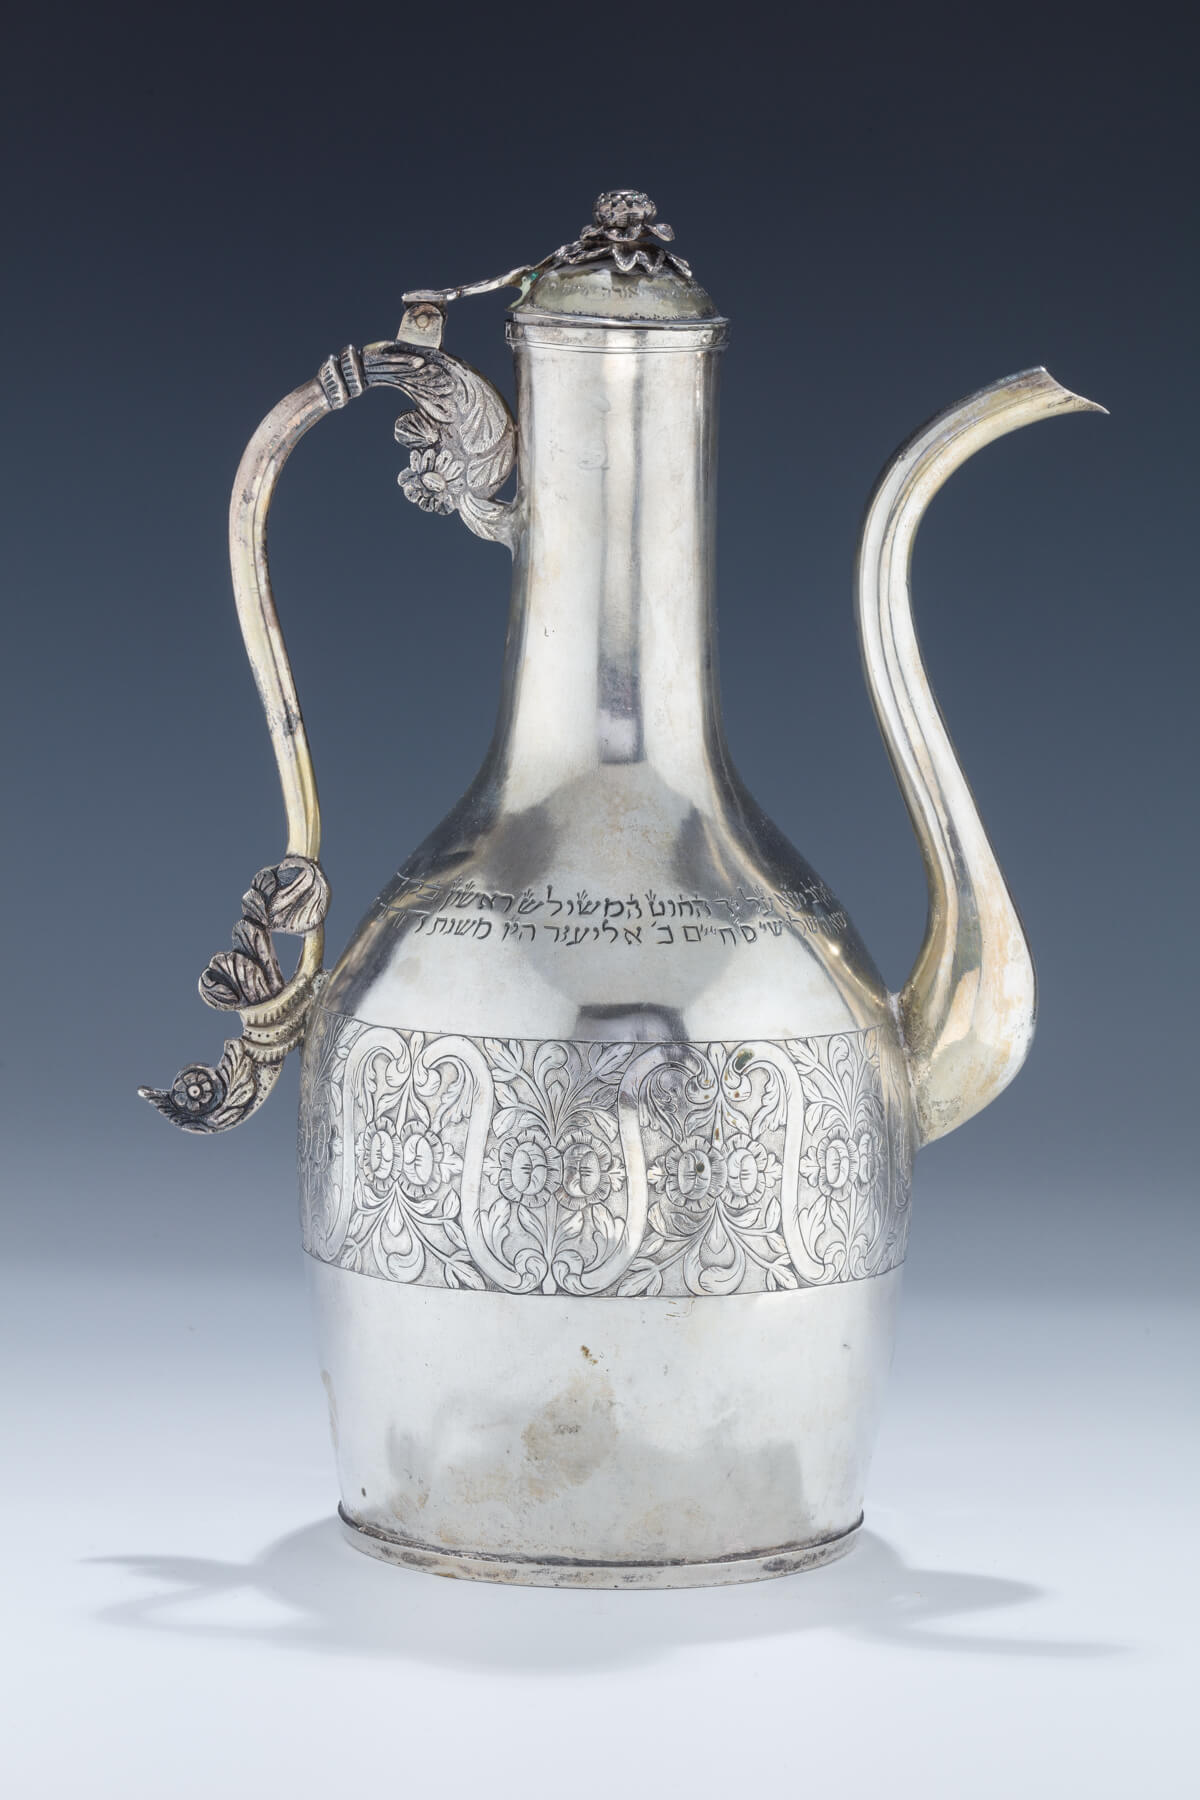 138. A Rare and Important Silver Decanter From a Beneficial Society